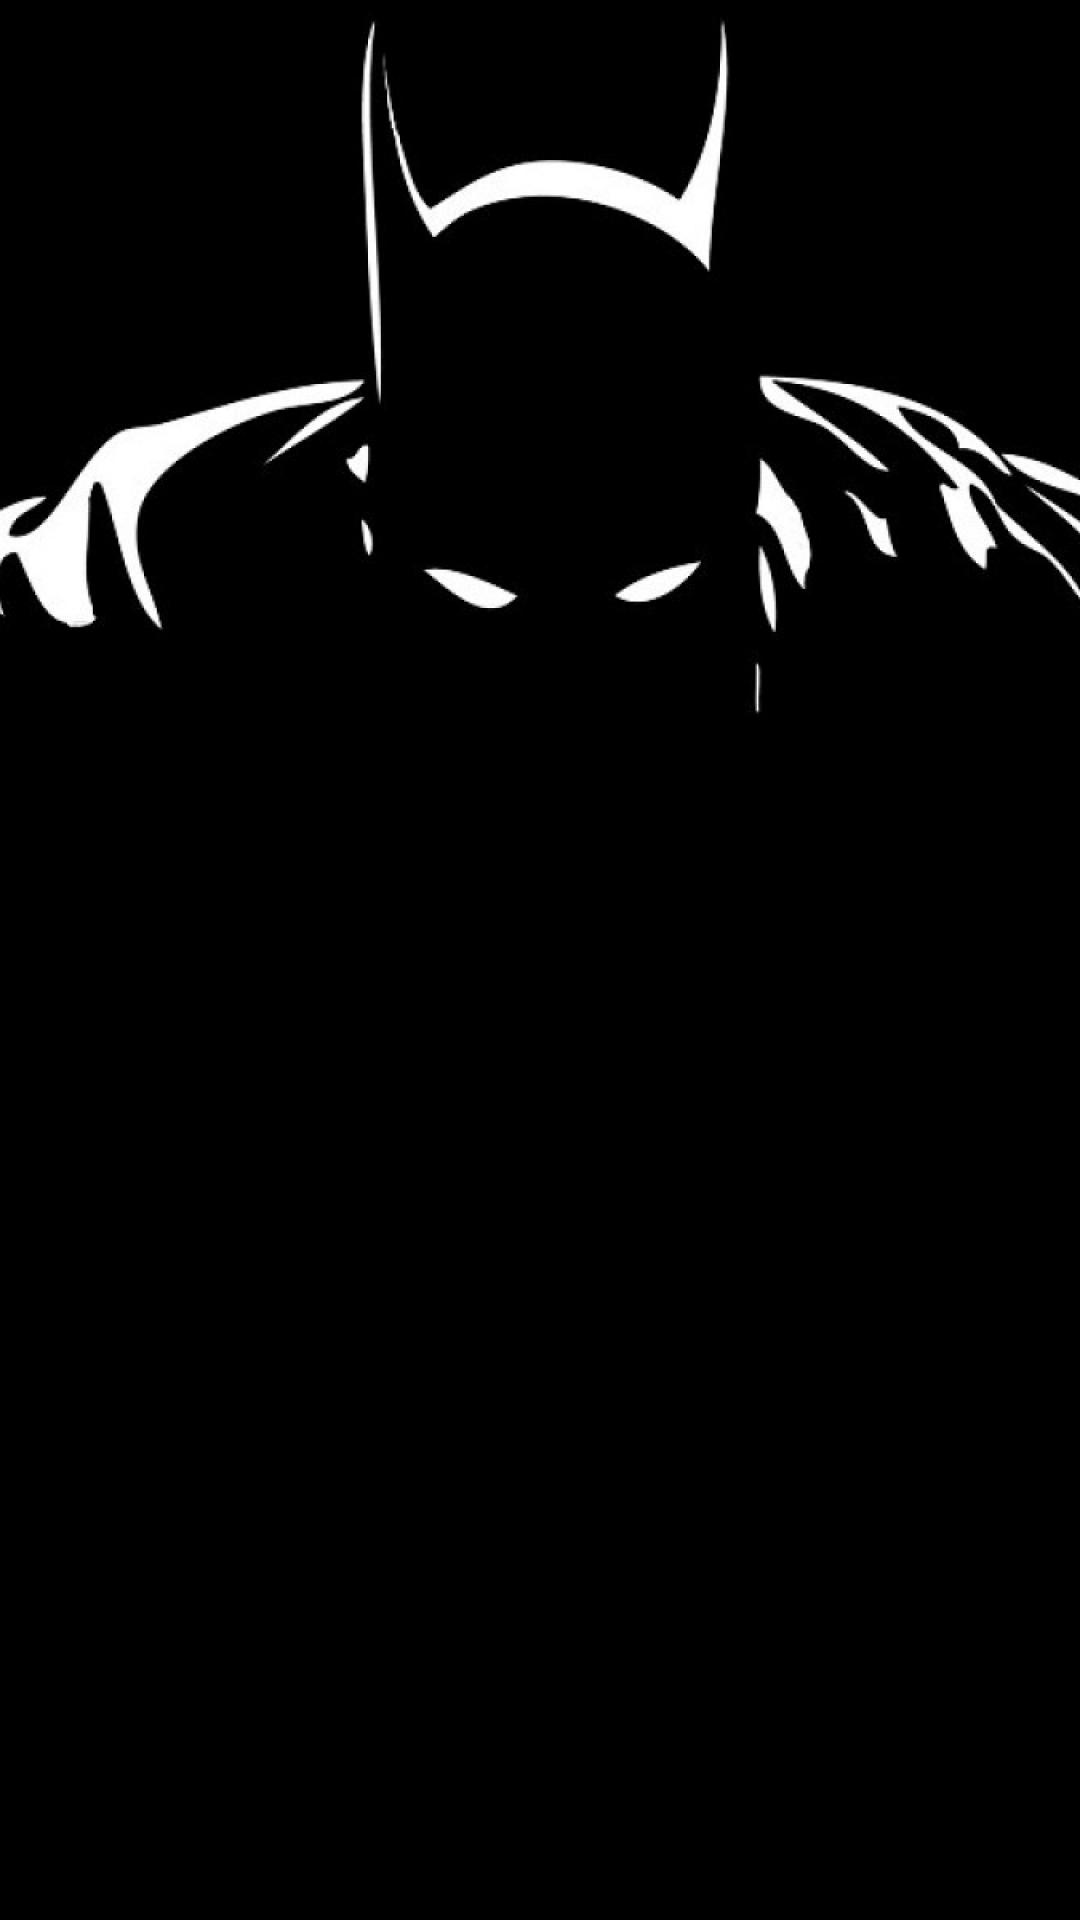 Batman Black And White Iphone Wallpaper